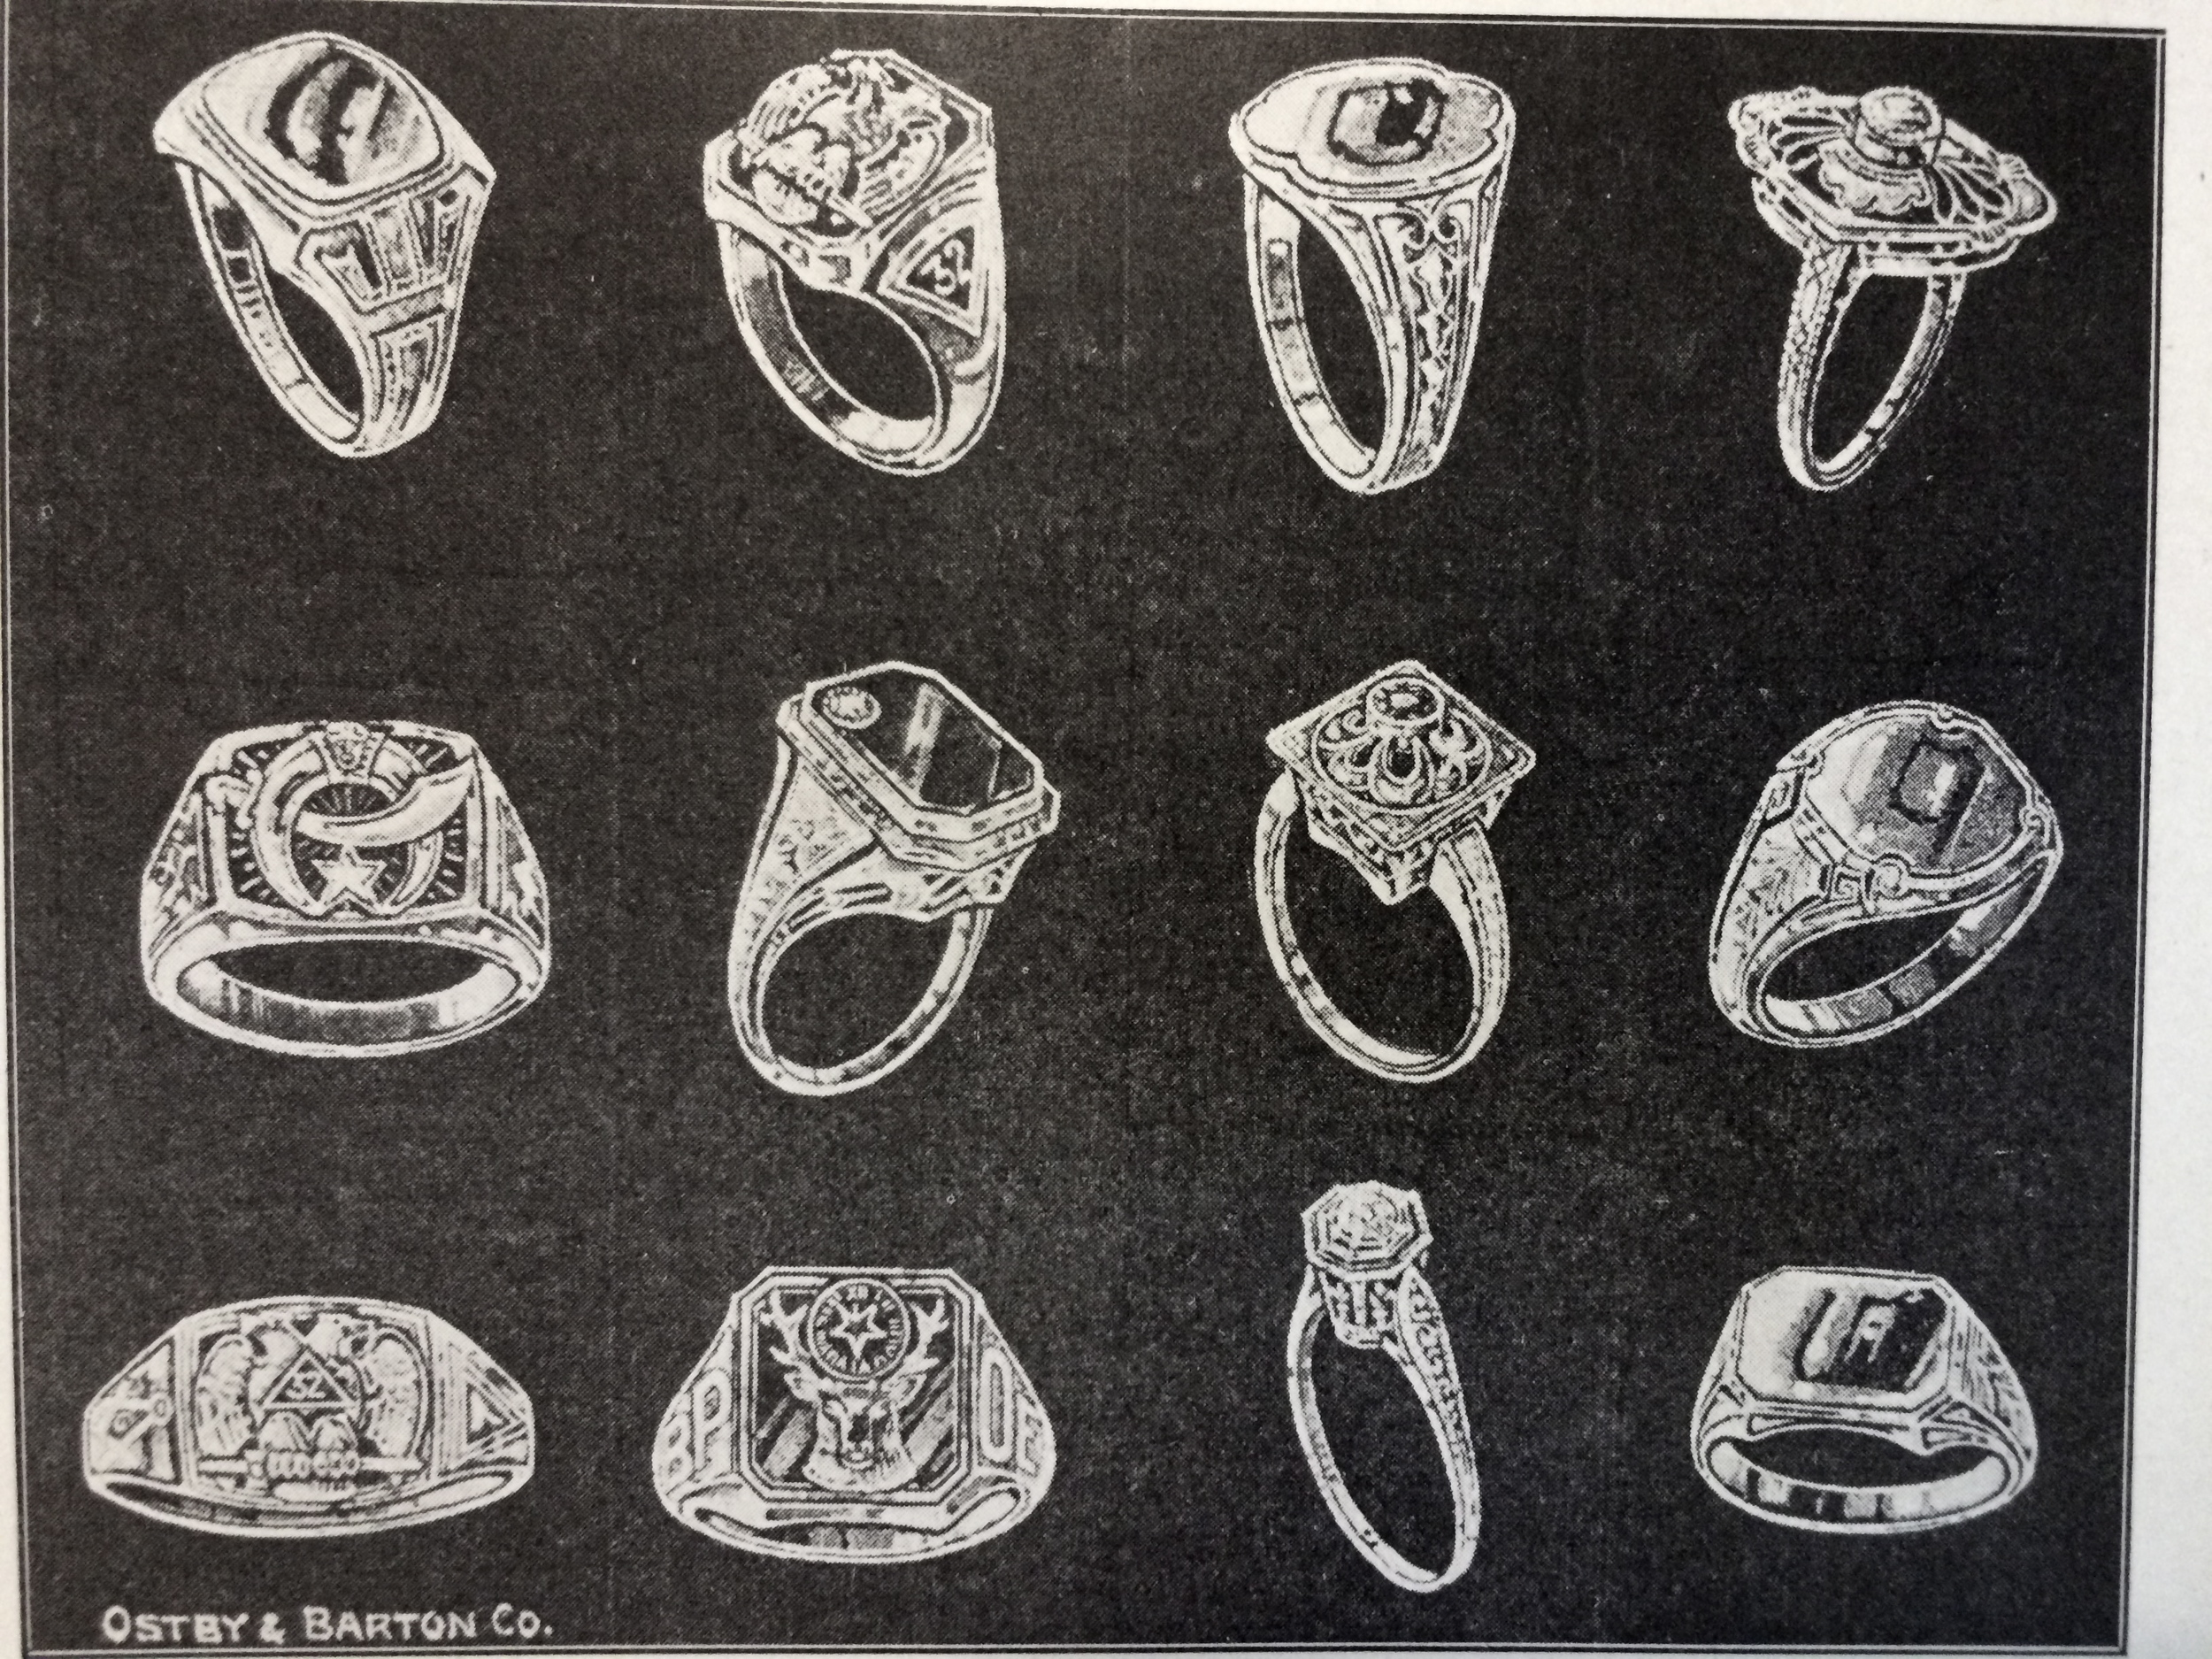 1921 ad featuring 12 Ostby & Barton Co. rings.